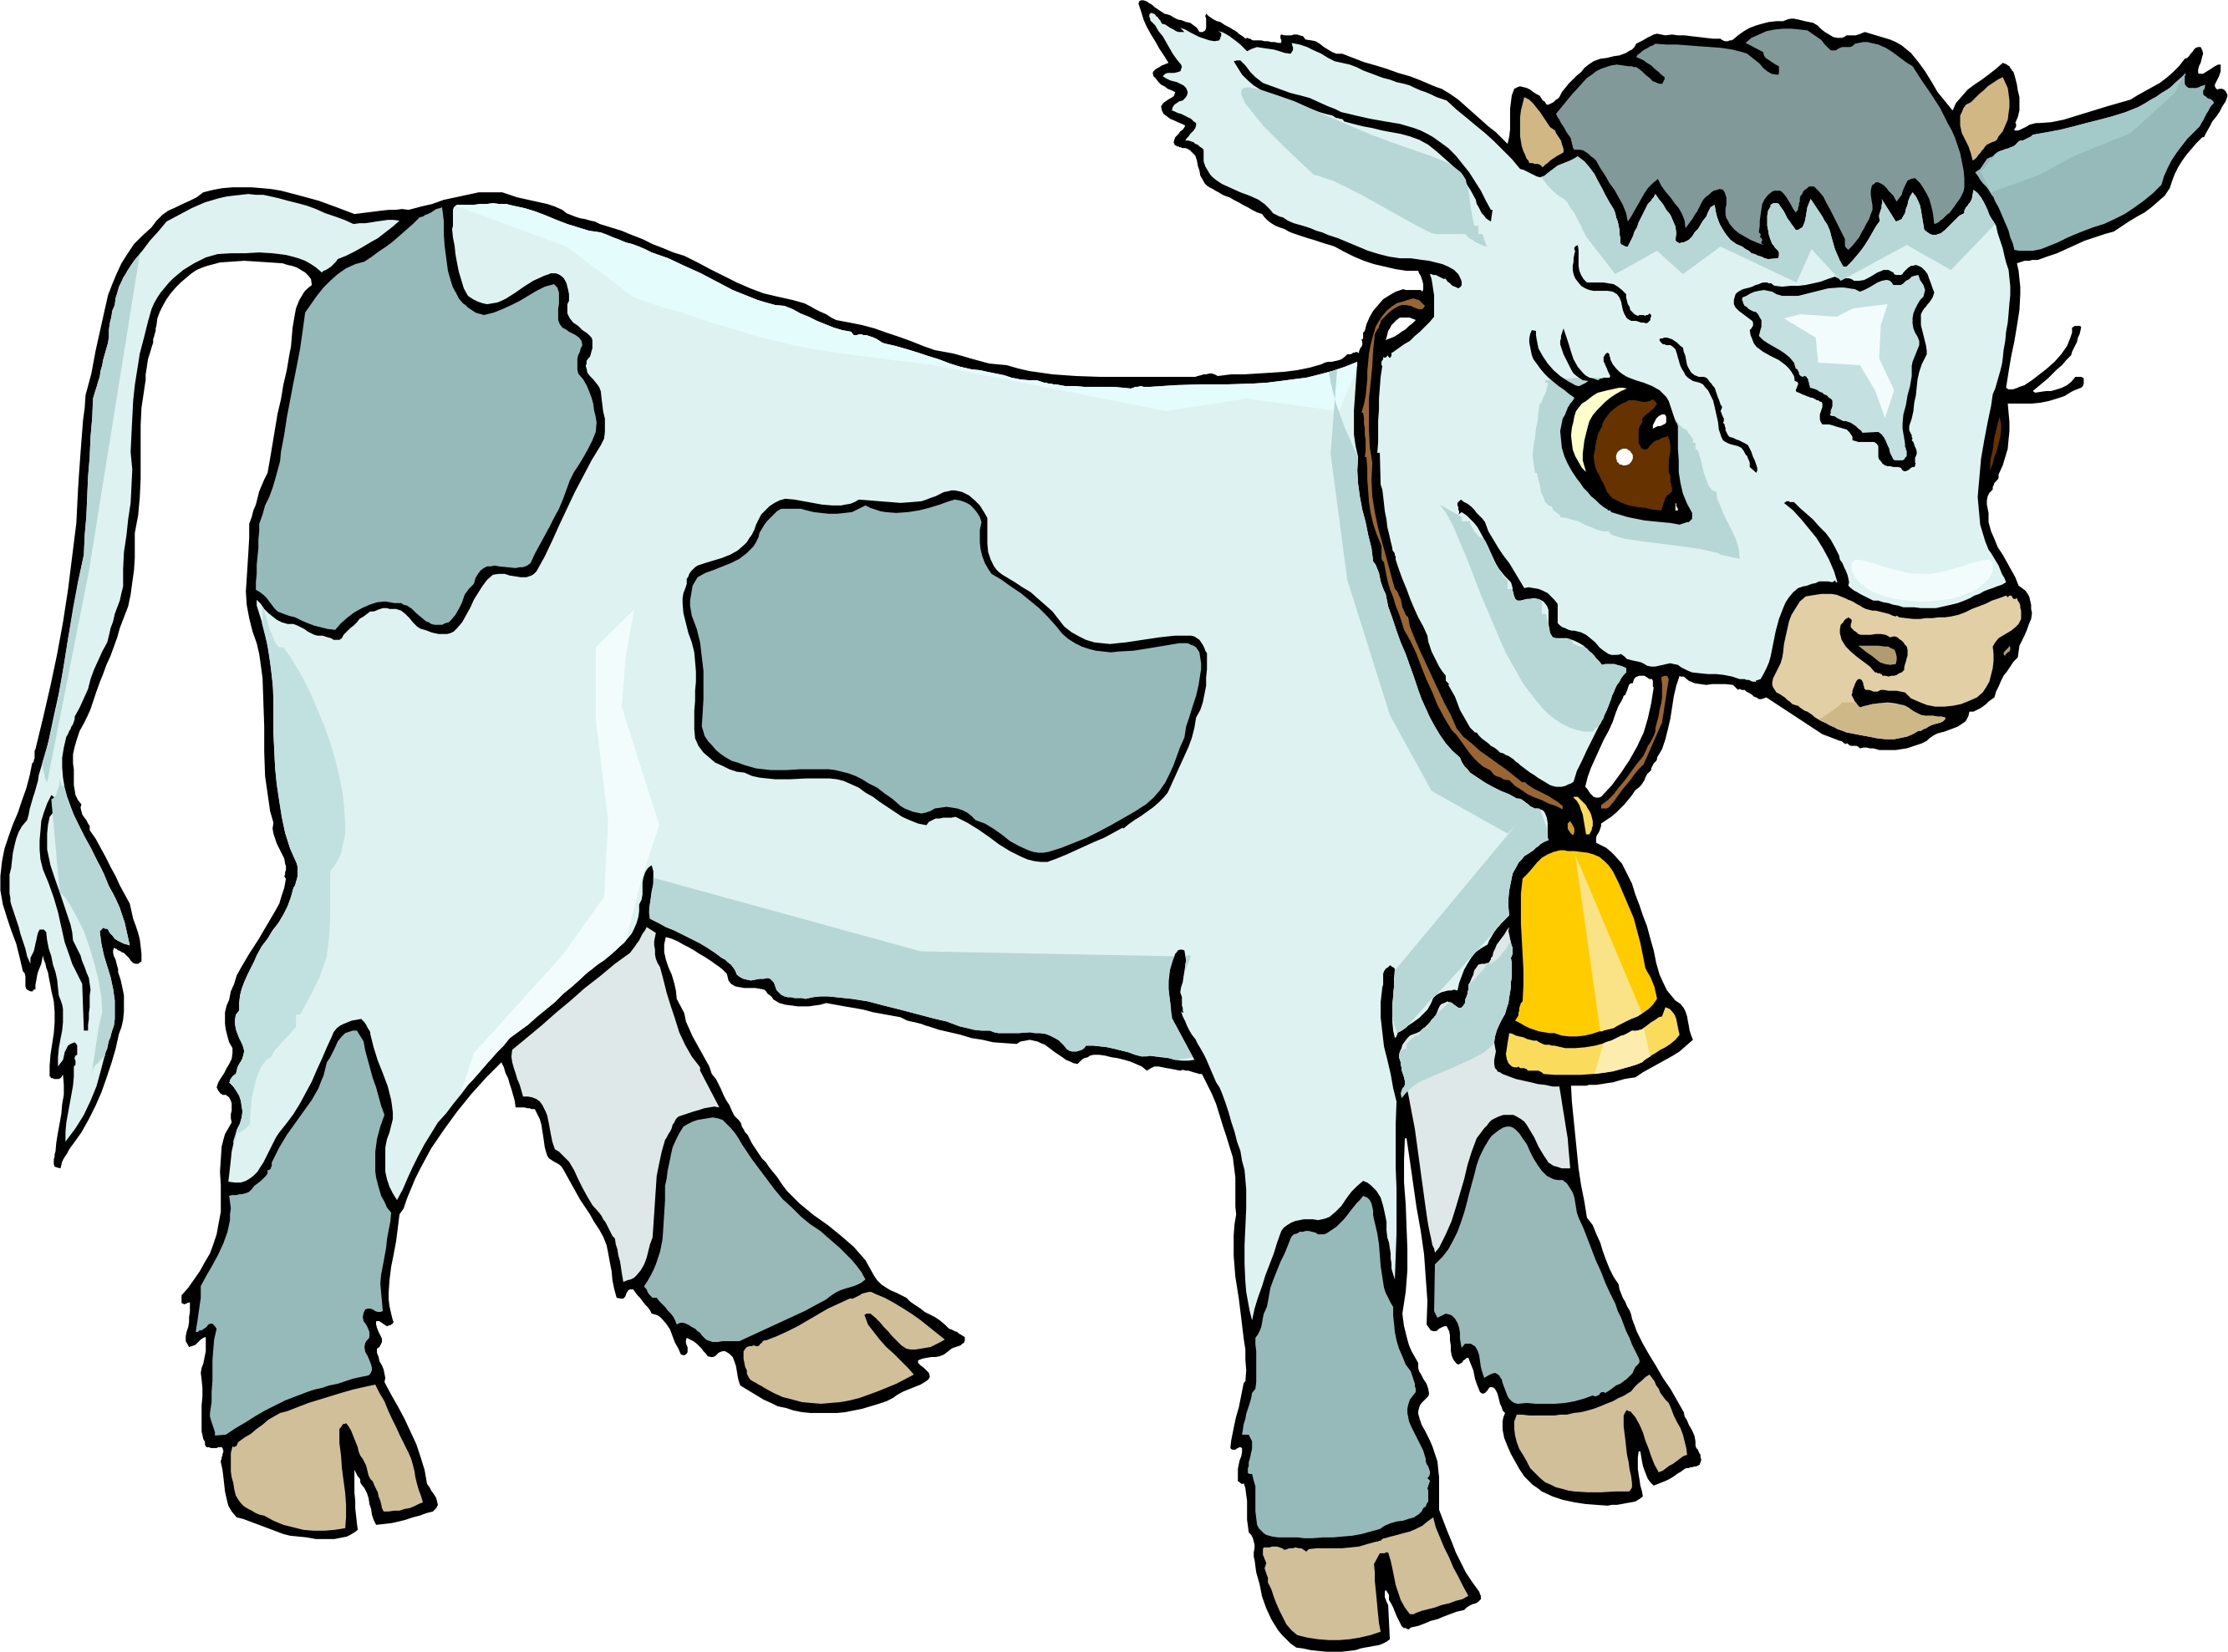 Cow And Calf Drawing   Free download best Cow And Calf